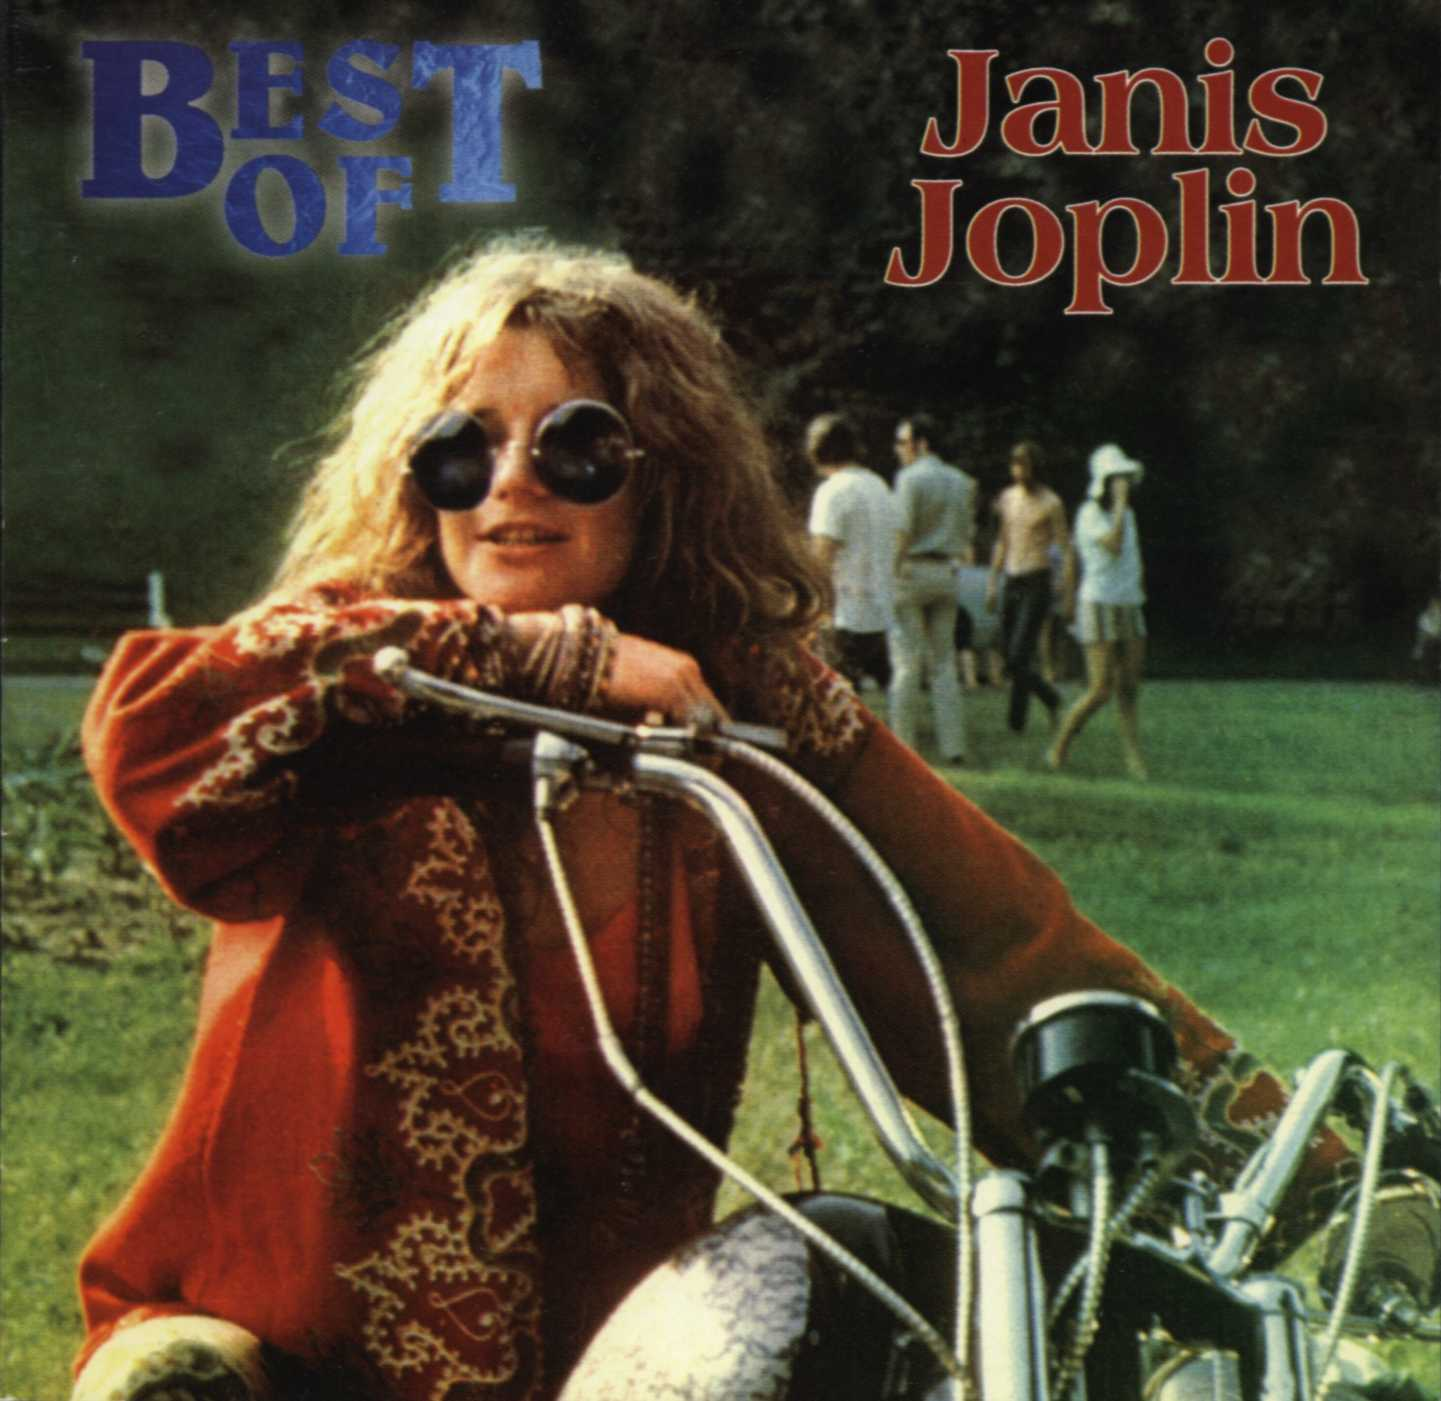 janis joplin an american blues legend Janis joplin one of the most colorful music legends of the 1960's was janis joplin blues legend janis lyn joplin was born on january 19th 1943, the eldest child of parents seth and dorothy joplin.